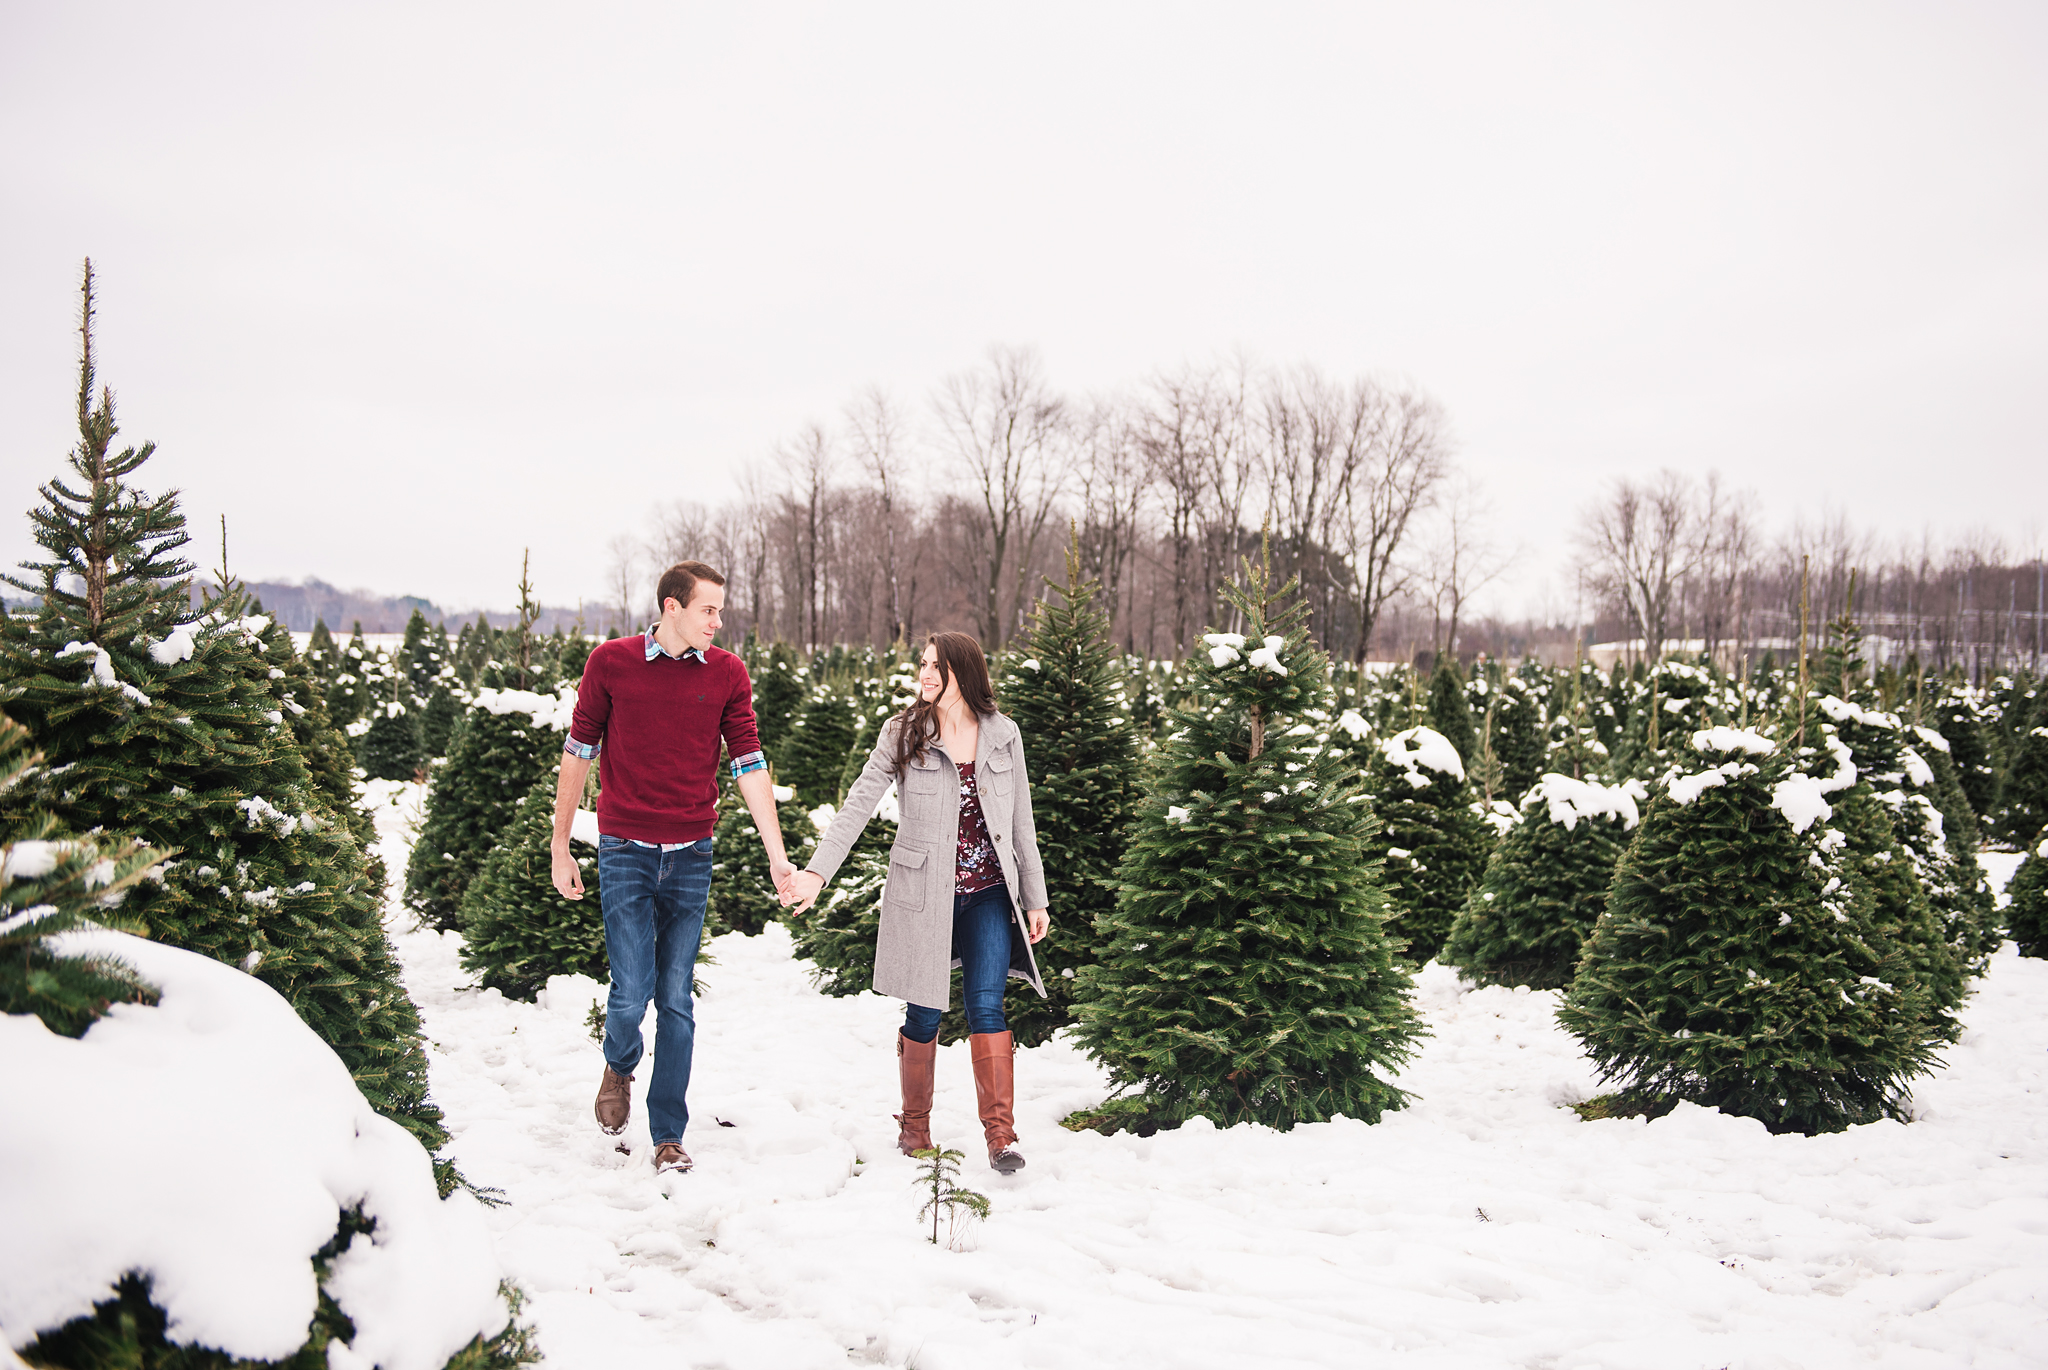 Woody_Acres_Rochester_Engagement_Session_JILL_STUDIO_Rochester_NY_Photographer_152533.jpg